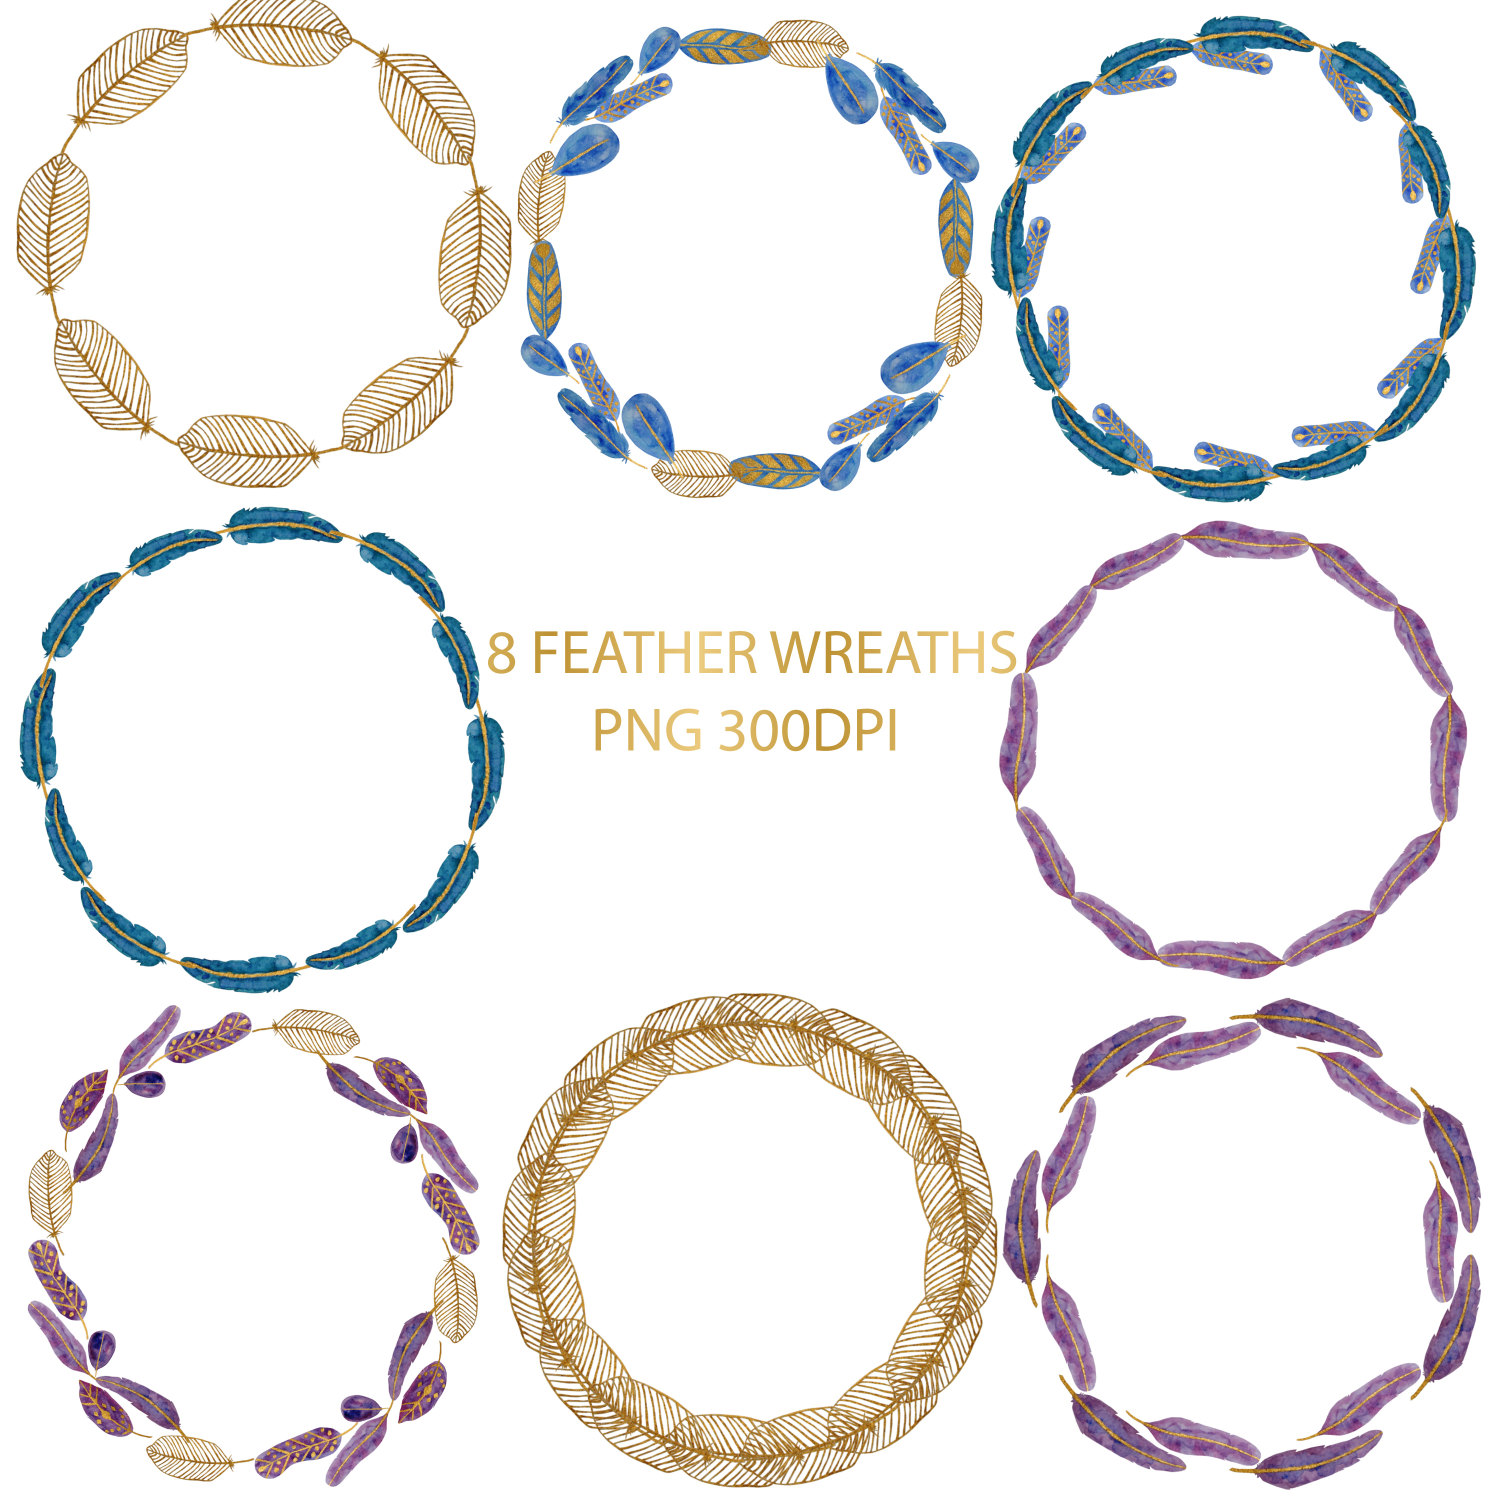 Boho clipart circle. Feathers watercolor wreaths this